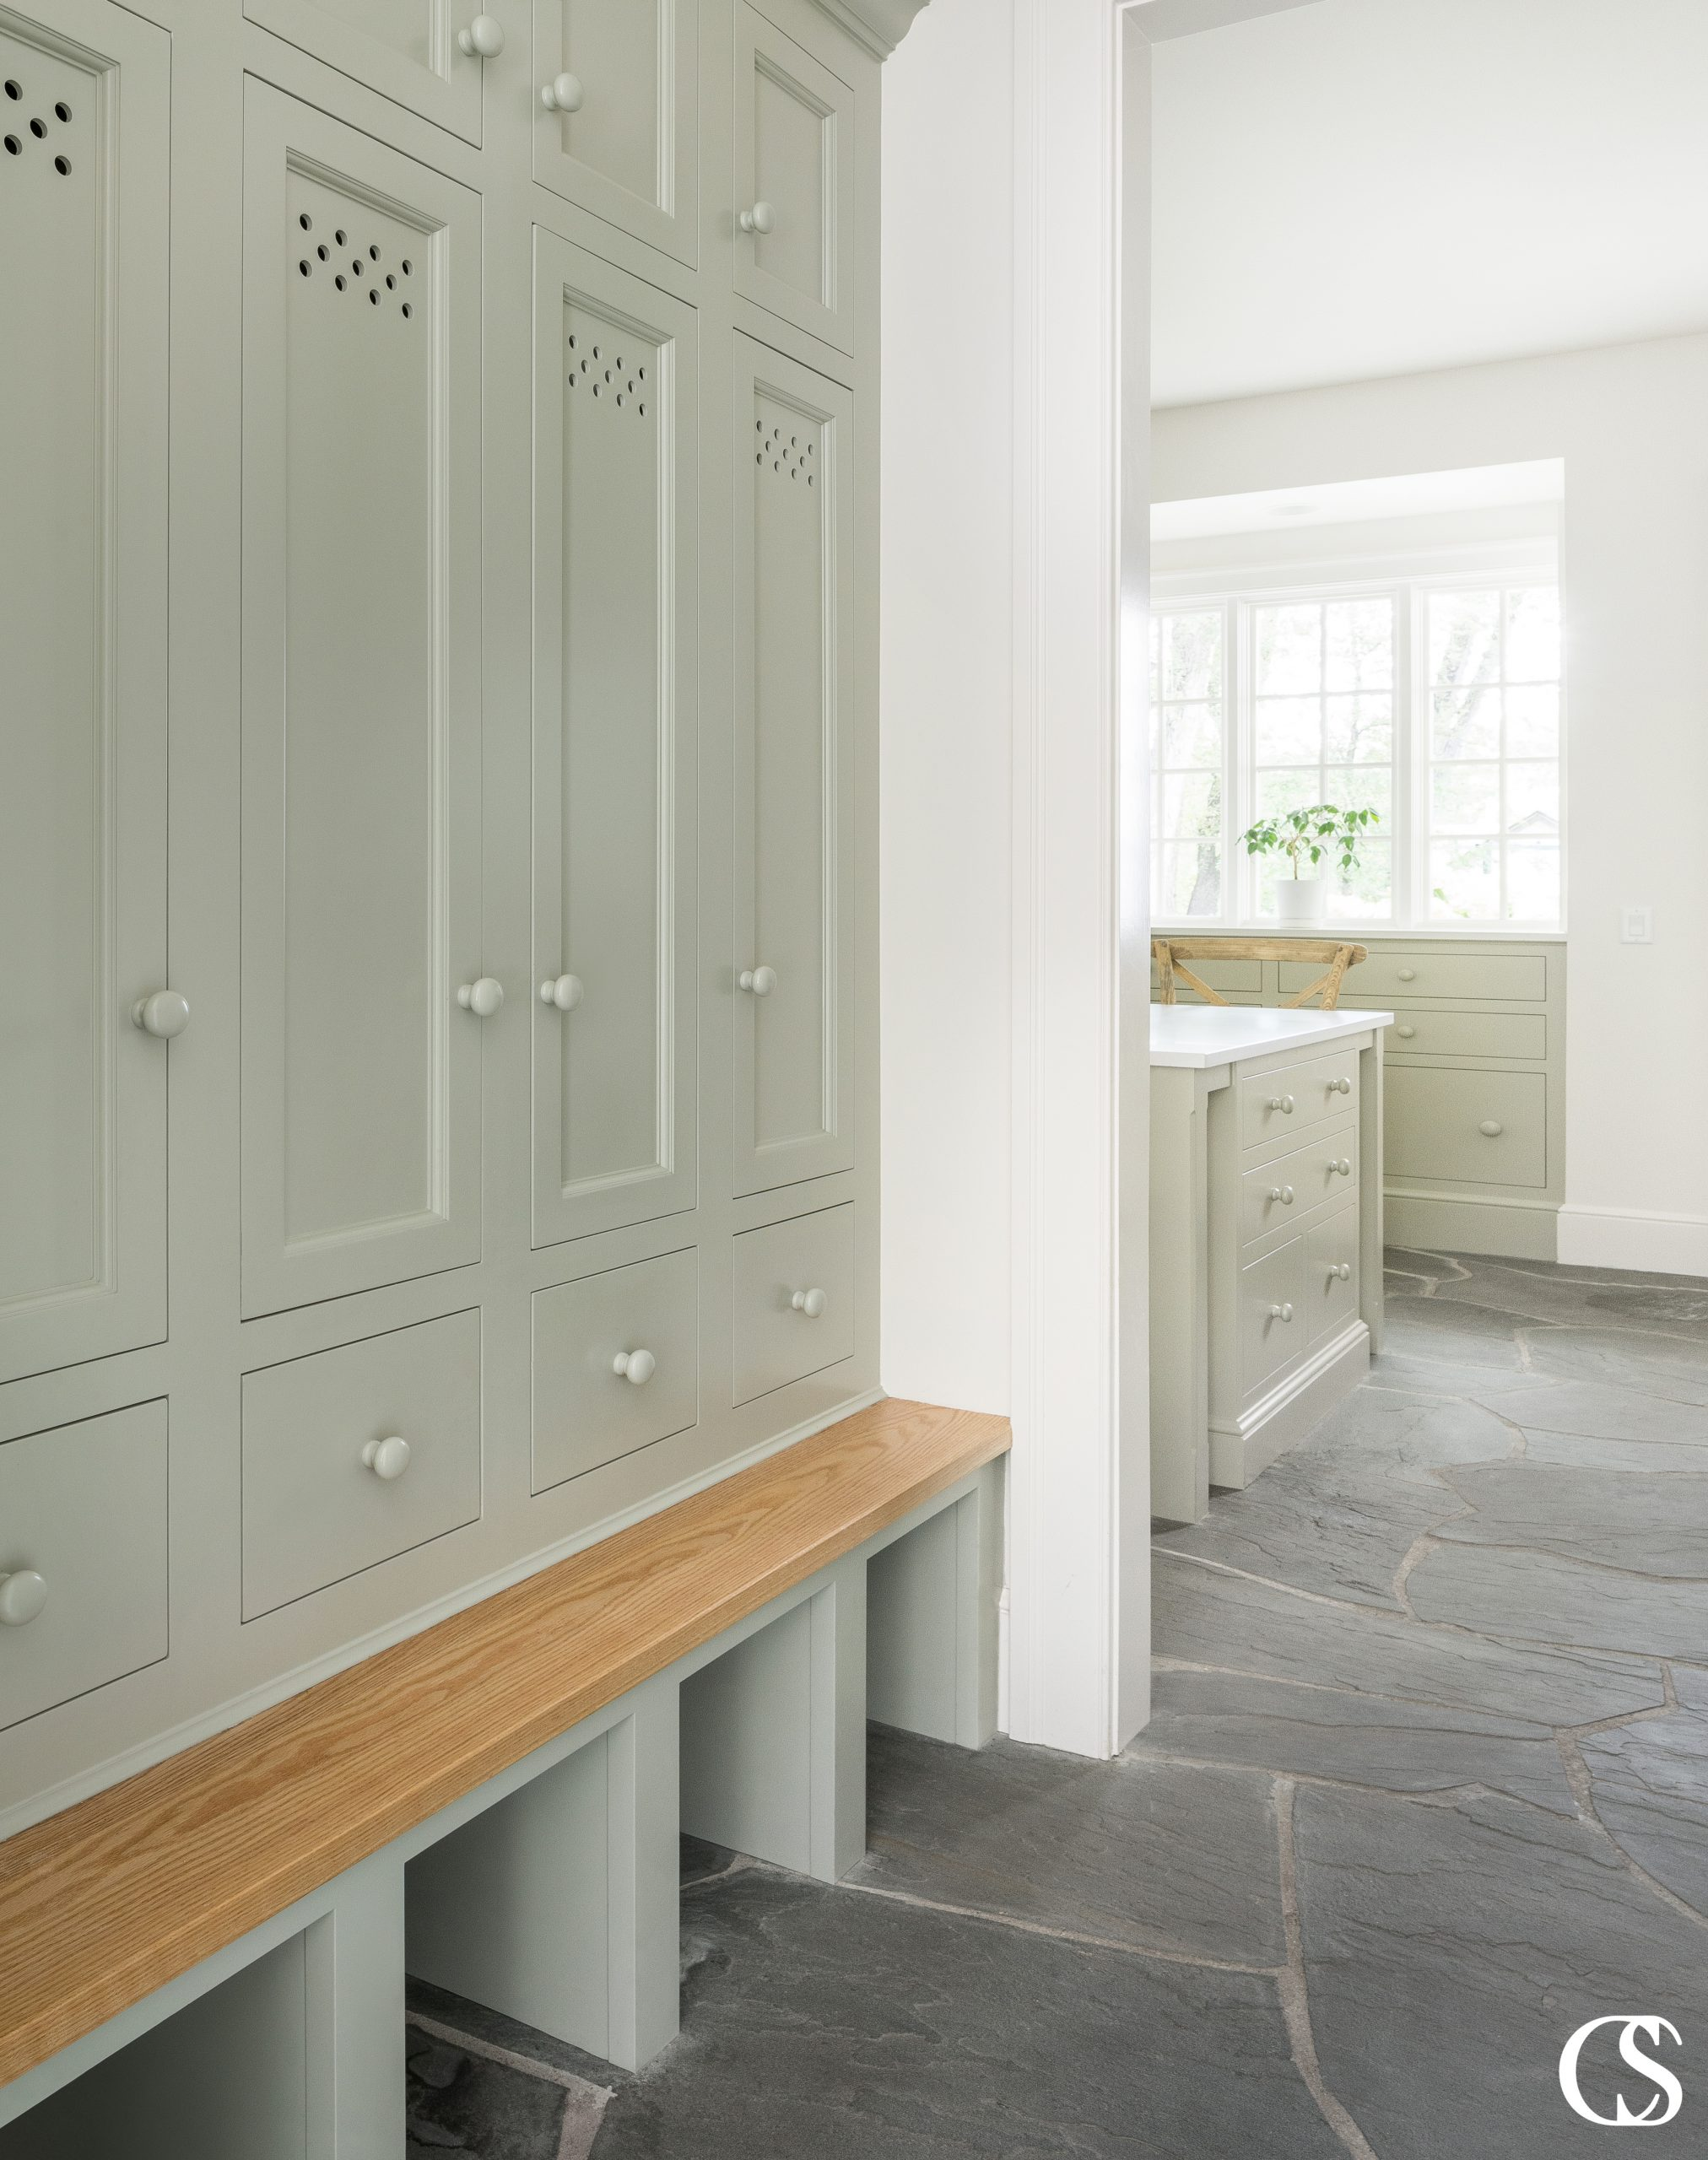 Having a custom entry way cabinet with a bench works for so many reasons—not least of why because it makes a great place to perch when removing shoes.